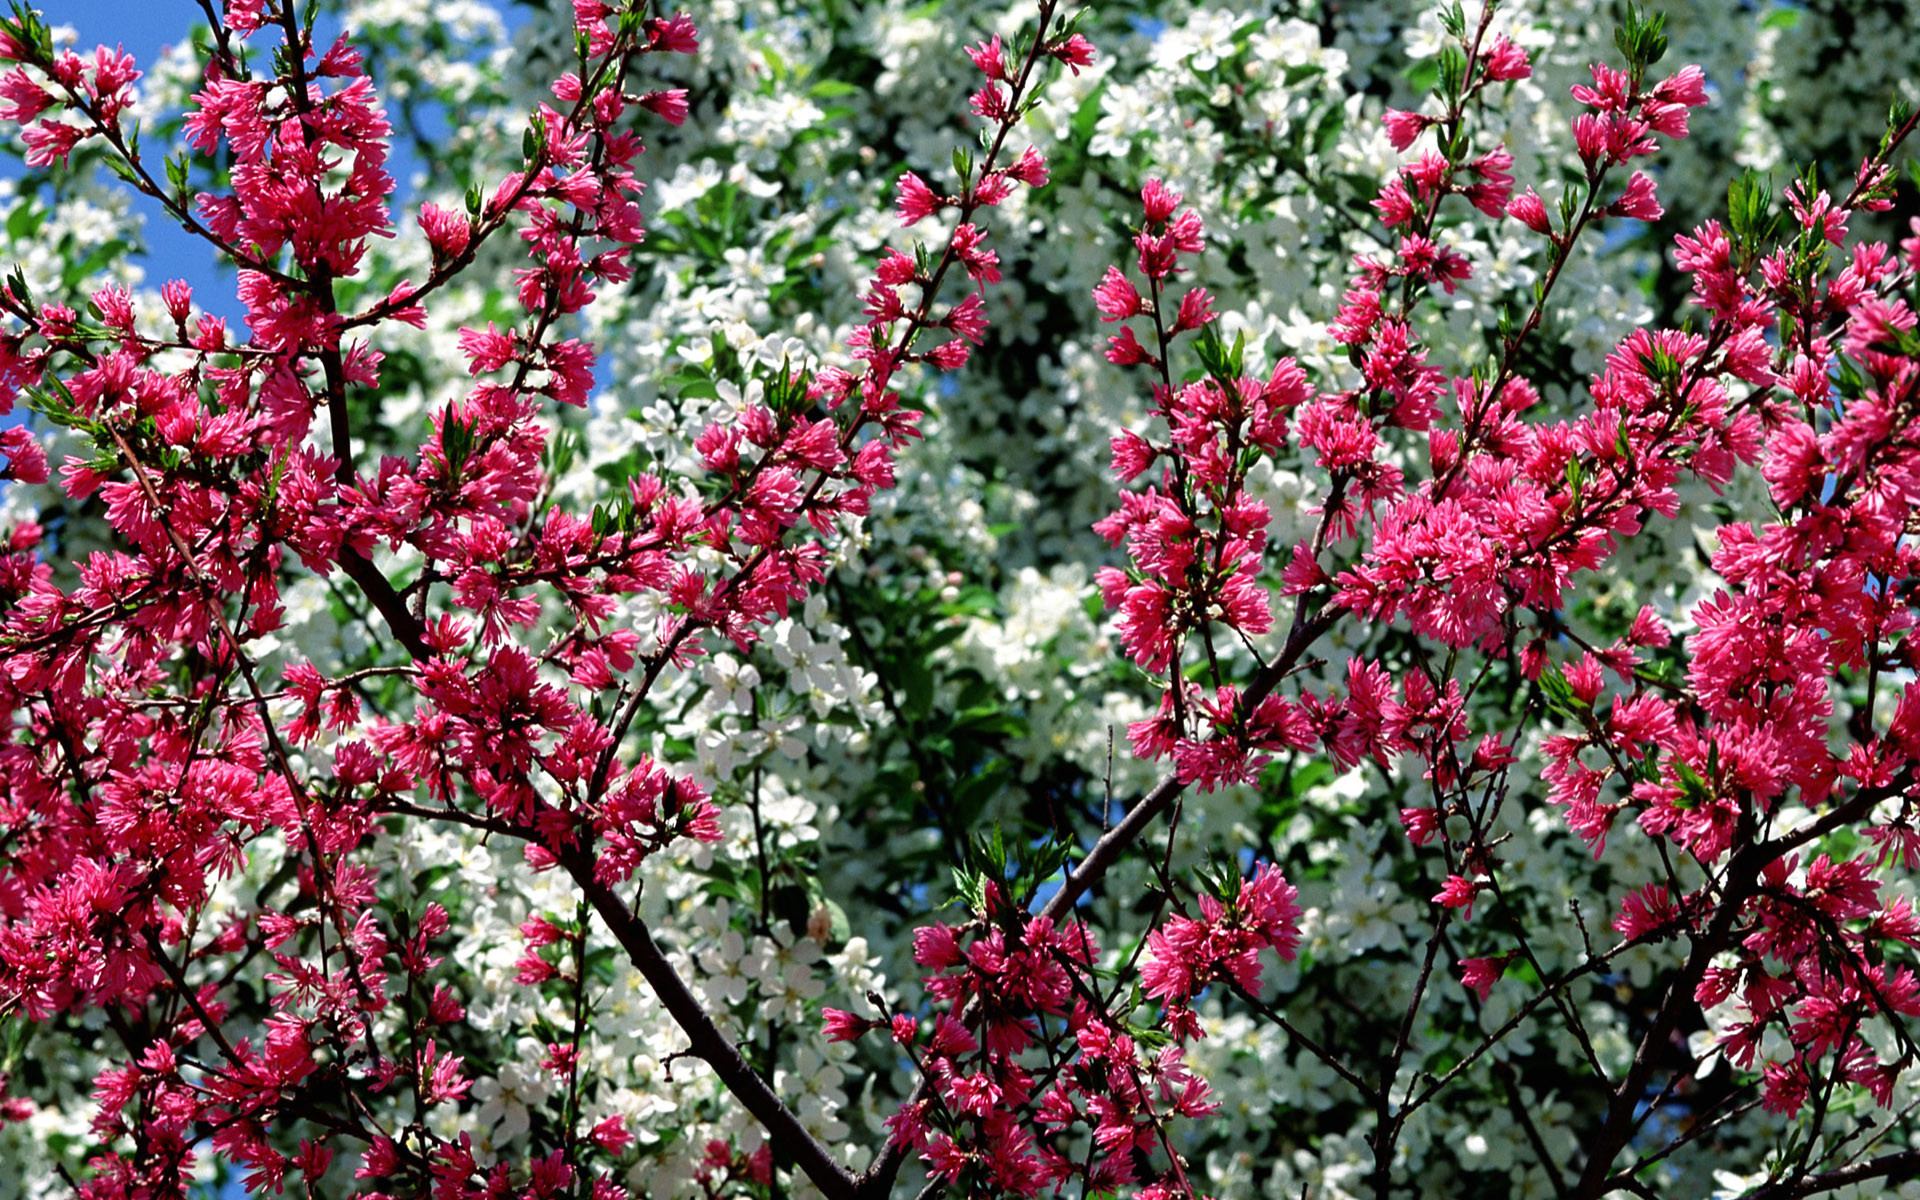 1920x1200 Free Spring Desktop Wallpaper | desktop Free Spring Flowers Wallpaper  Desktop. Free Spring Wallpaper .